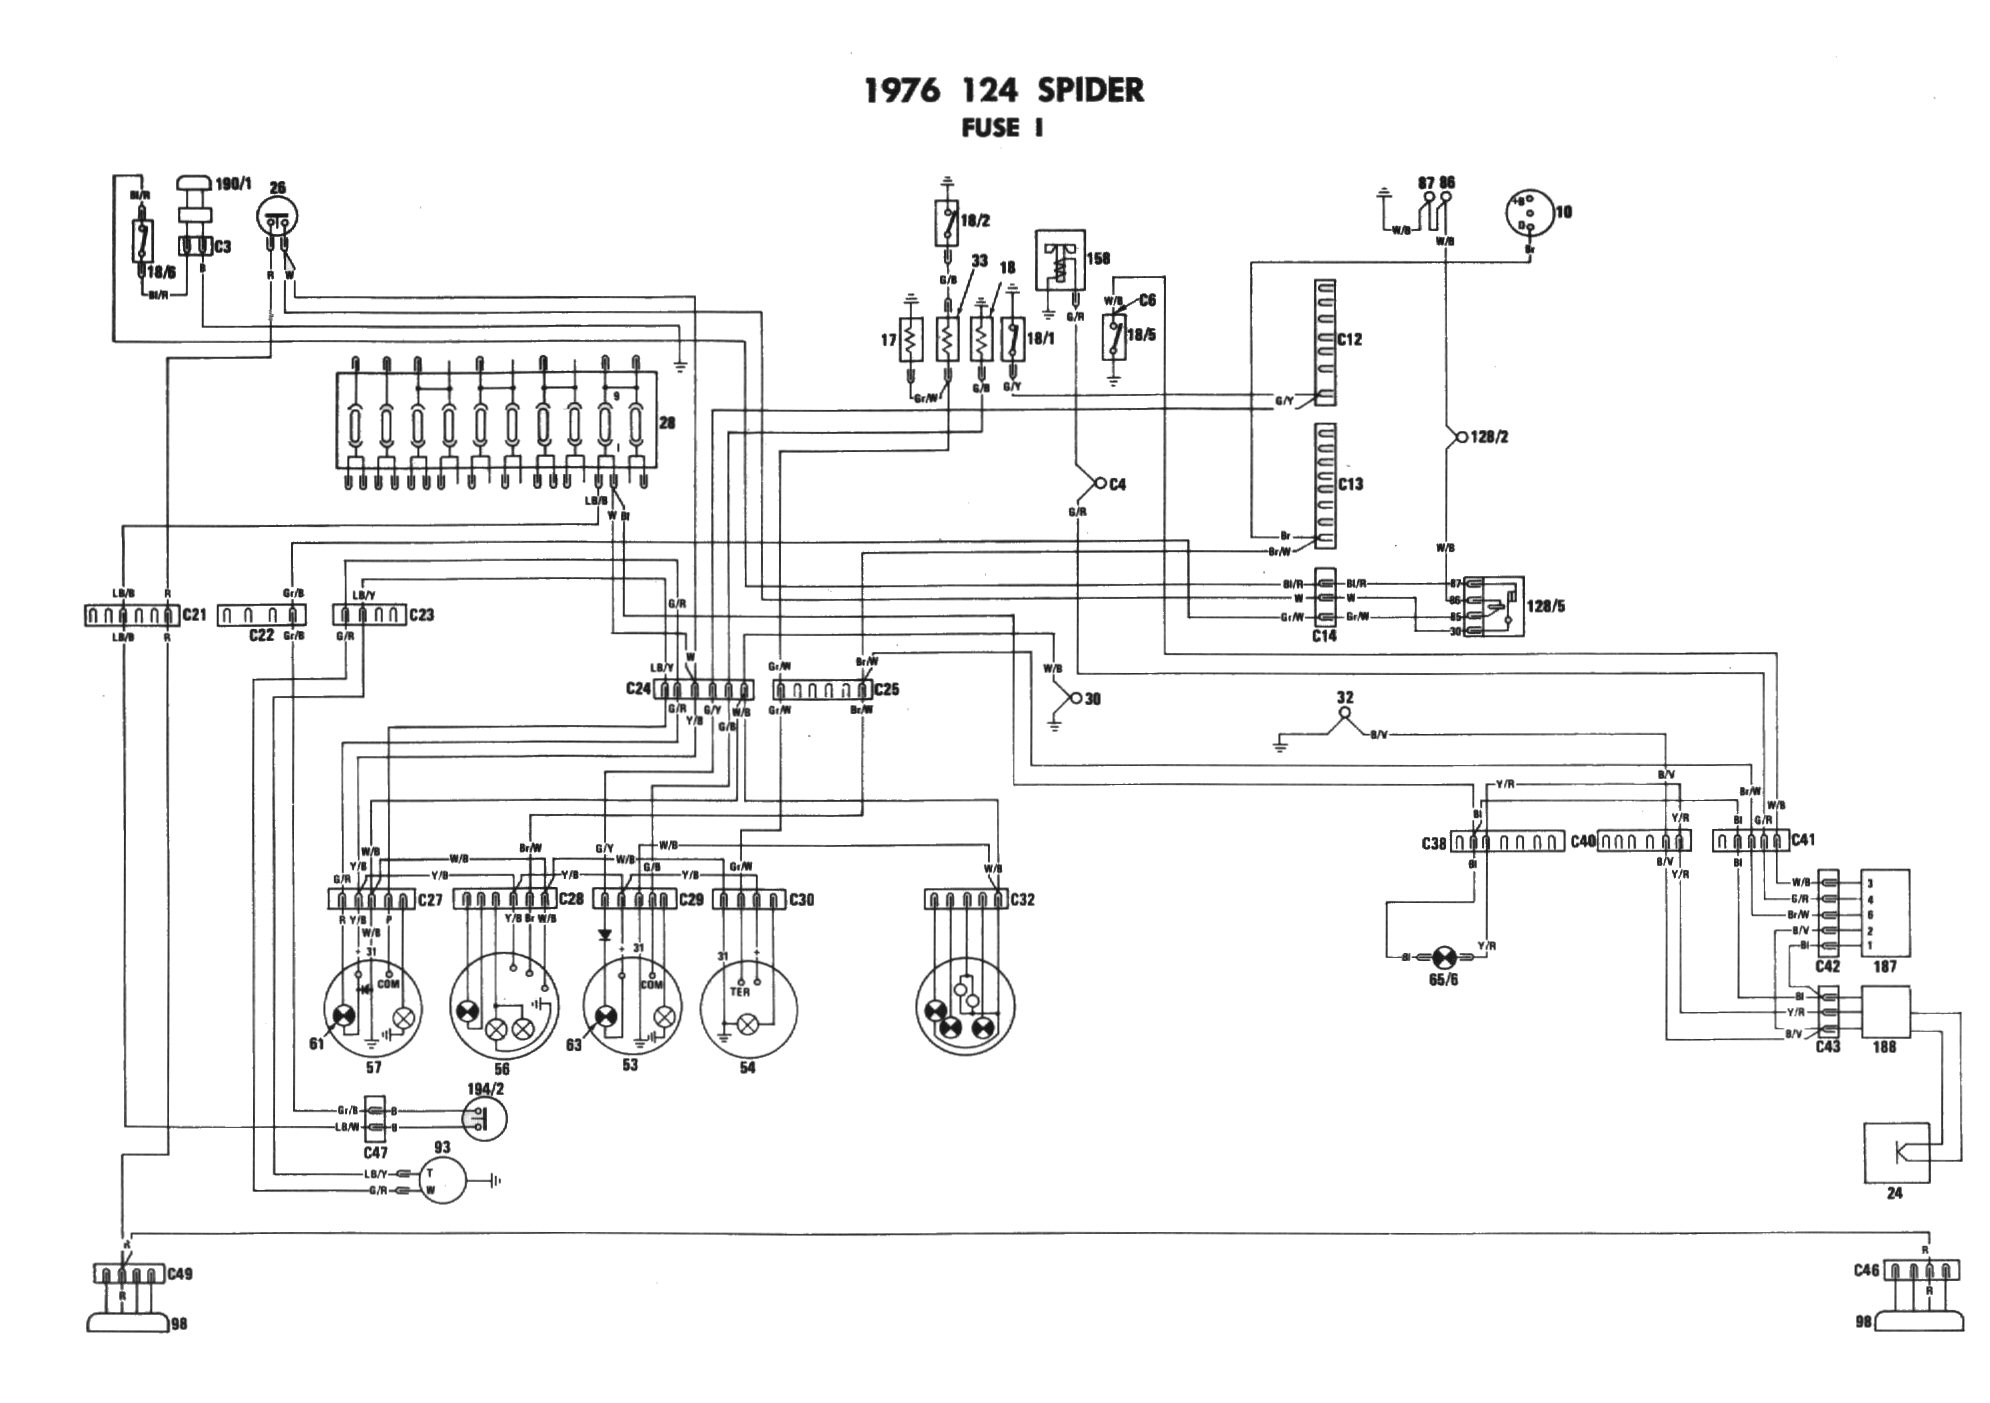 Fiat 131 Fuse Box Schema Wiring Diagrams For Punto 124 Spider Electrical Schemes Infiniti